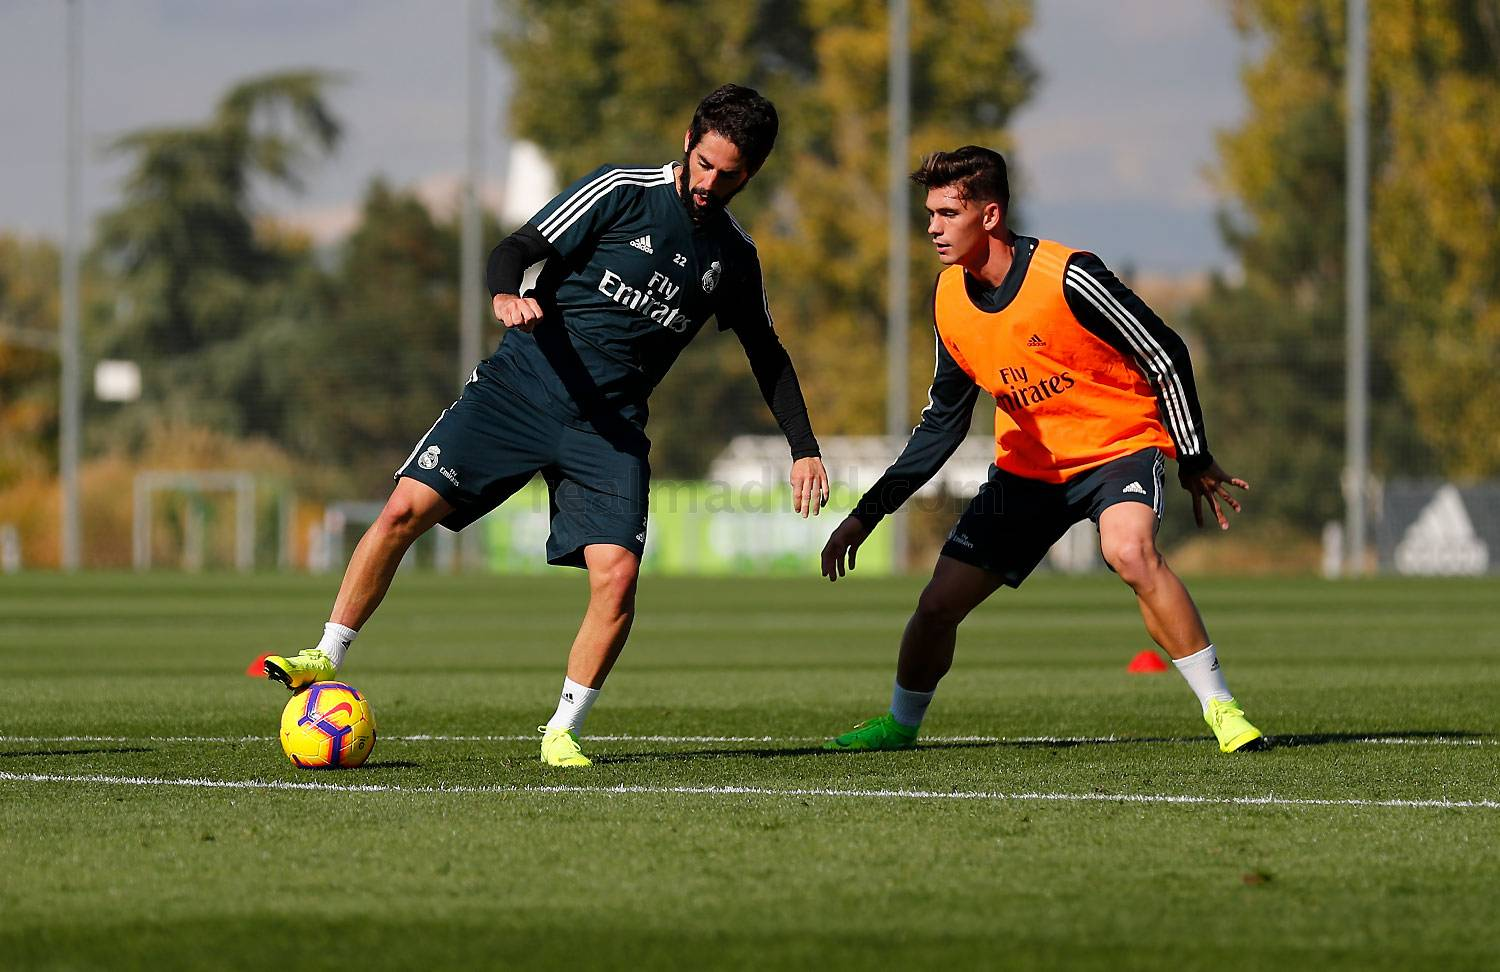 Real Madrid - Entrenamiento del Real Madrid - 01-11-2018